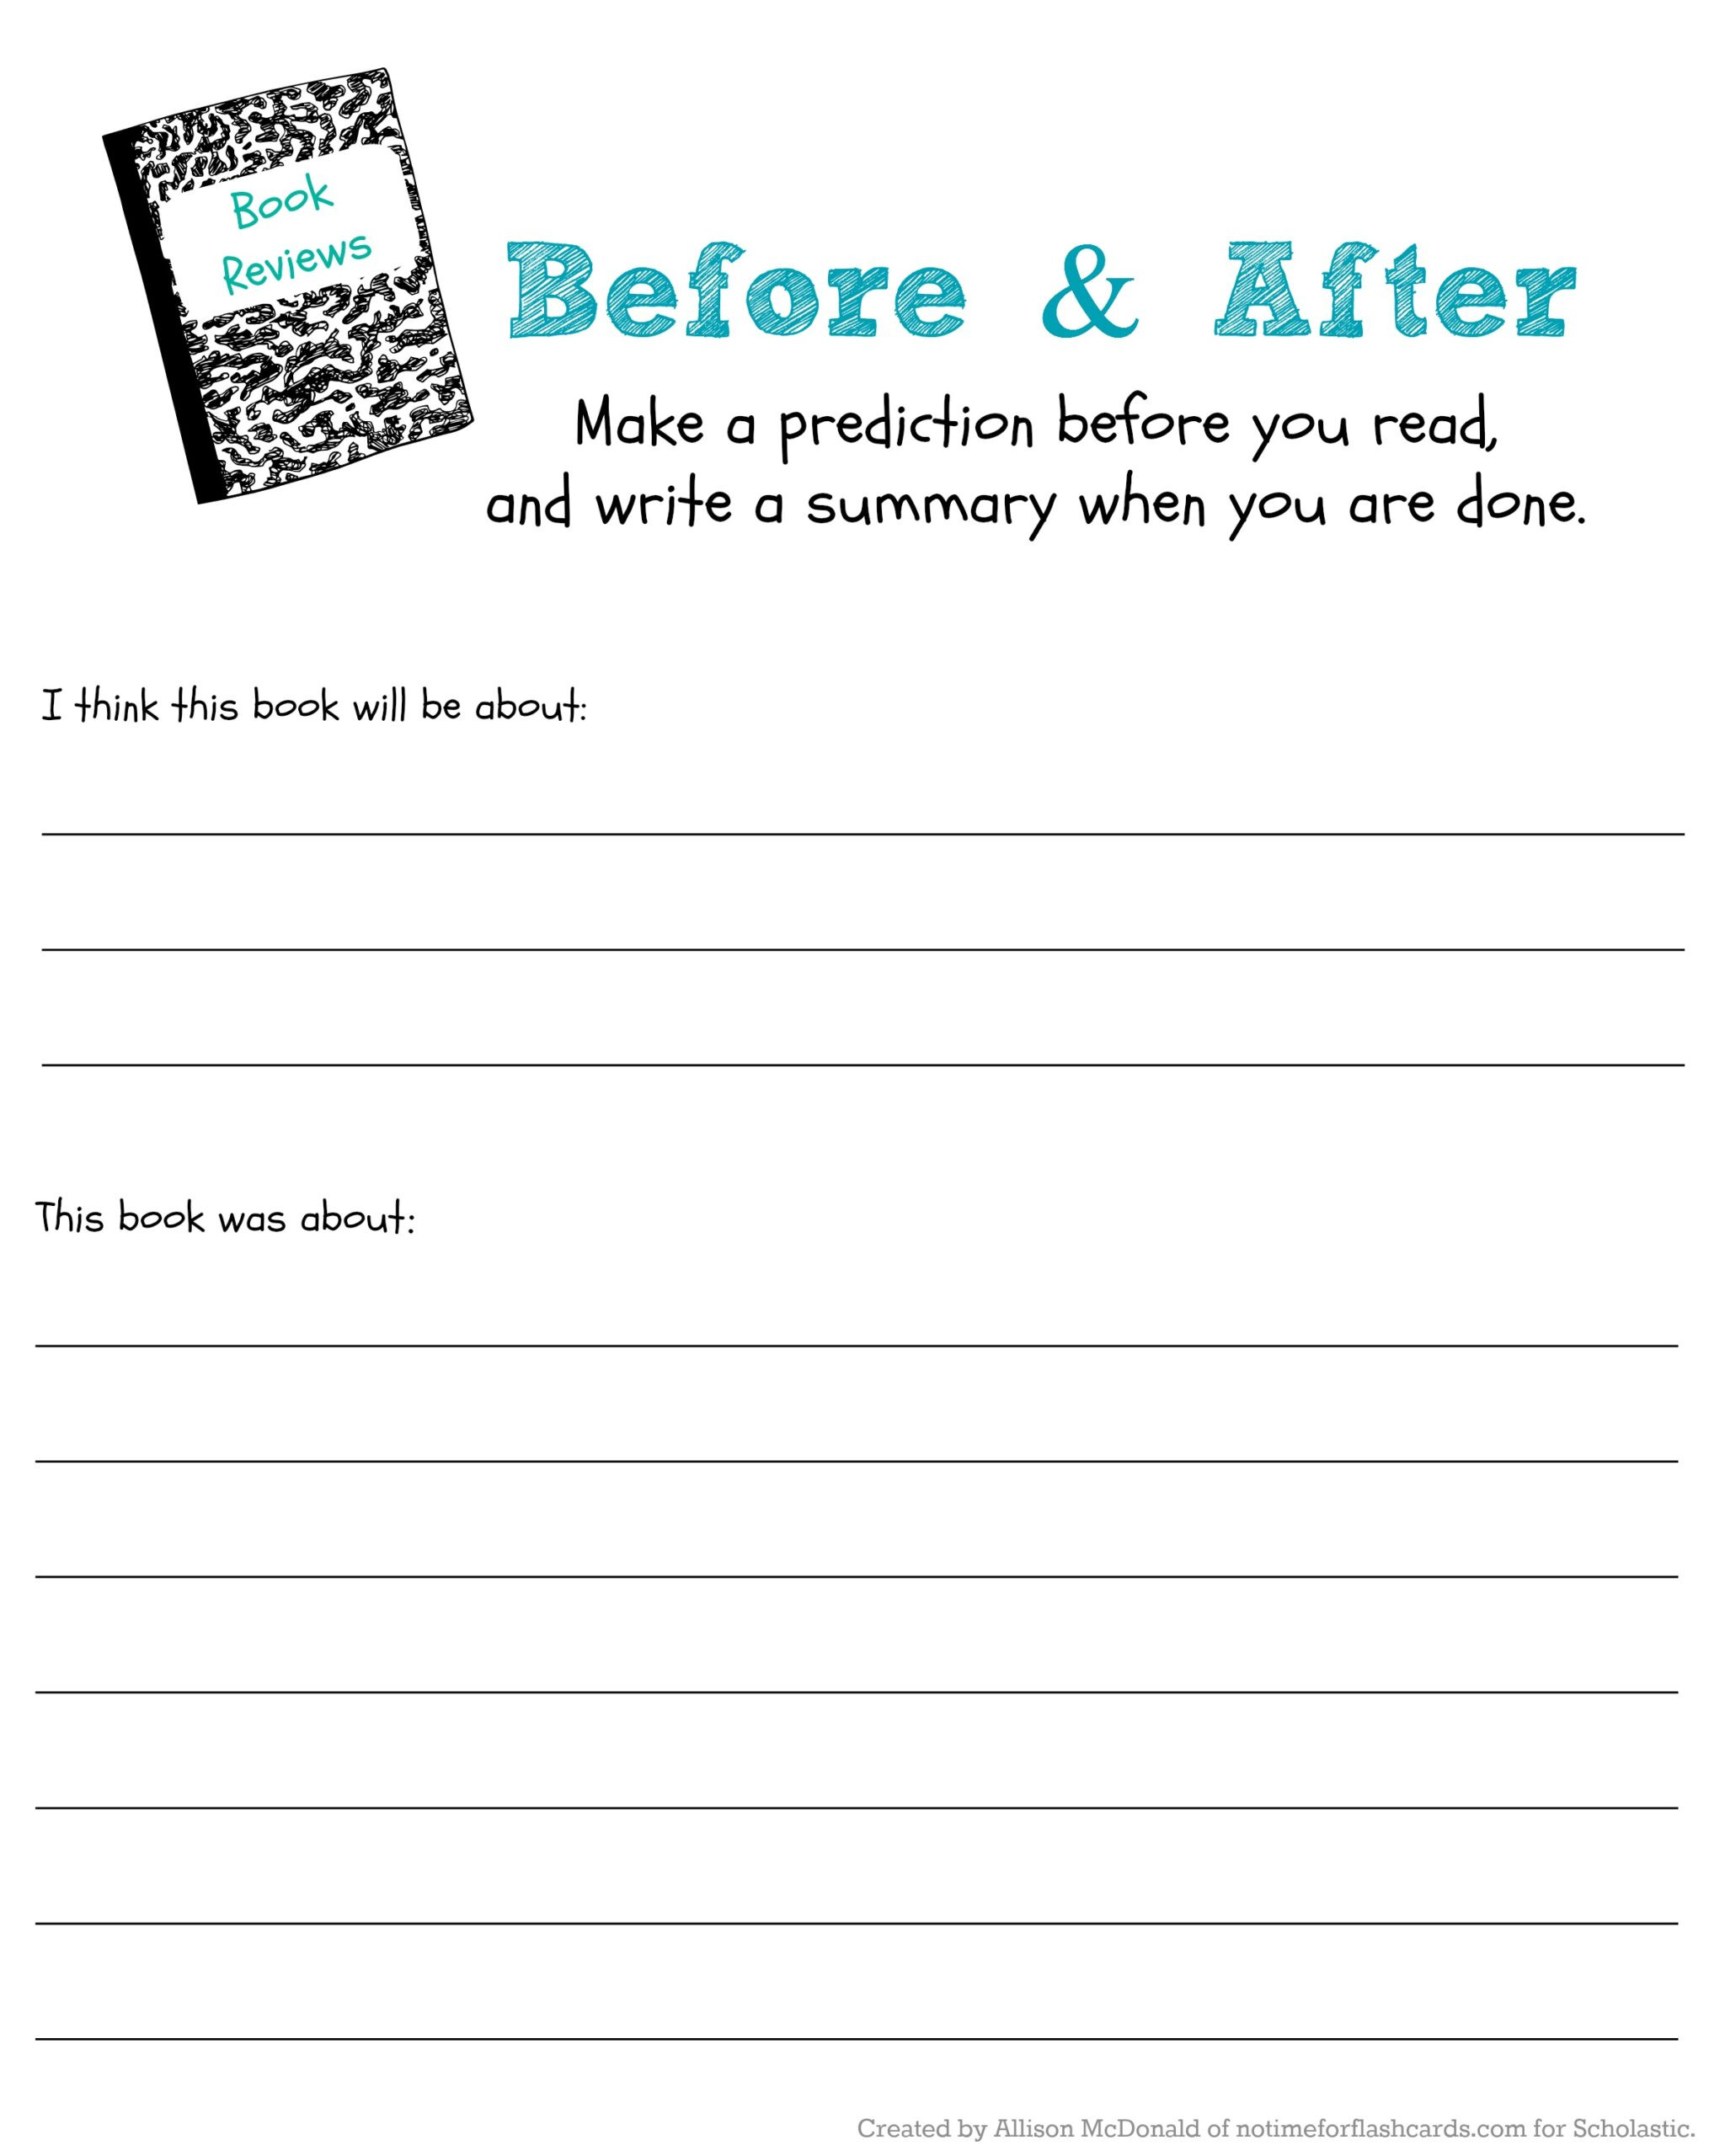 Summary Worksheets 2nd Grade Judge Book by Its Cover to Predict Read Scholastic Parents